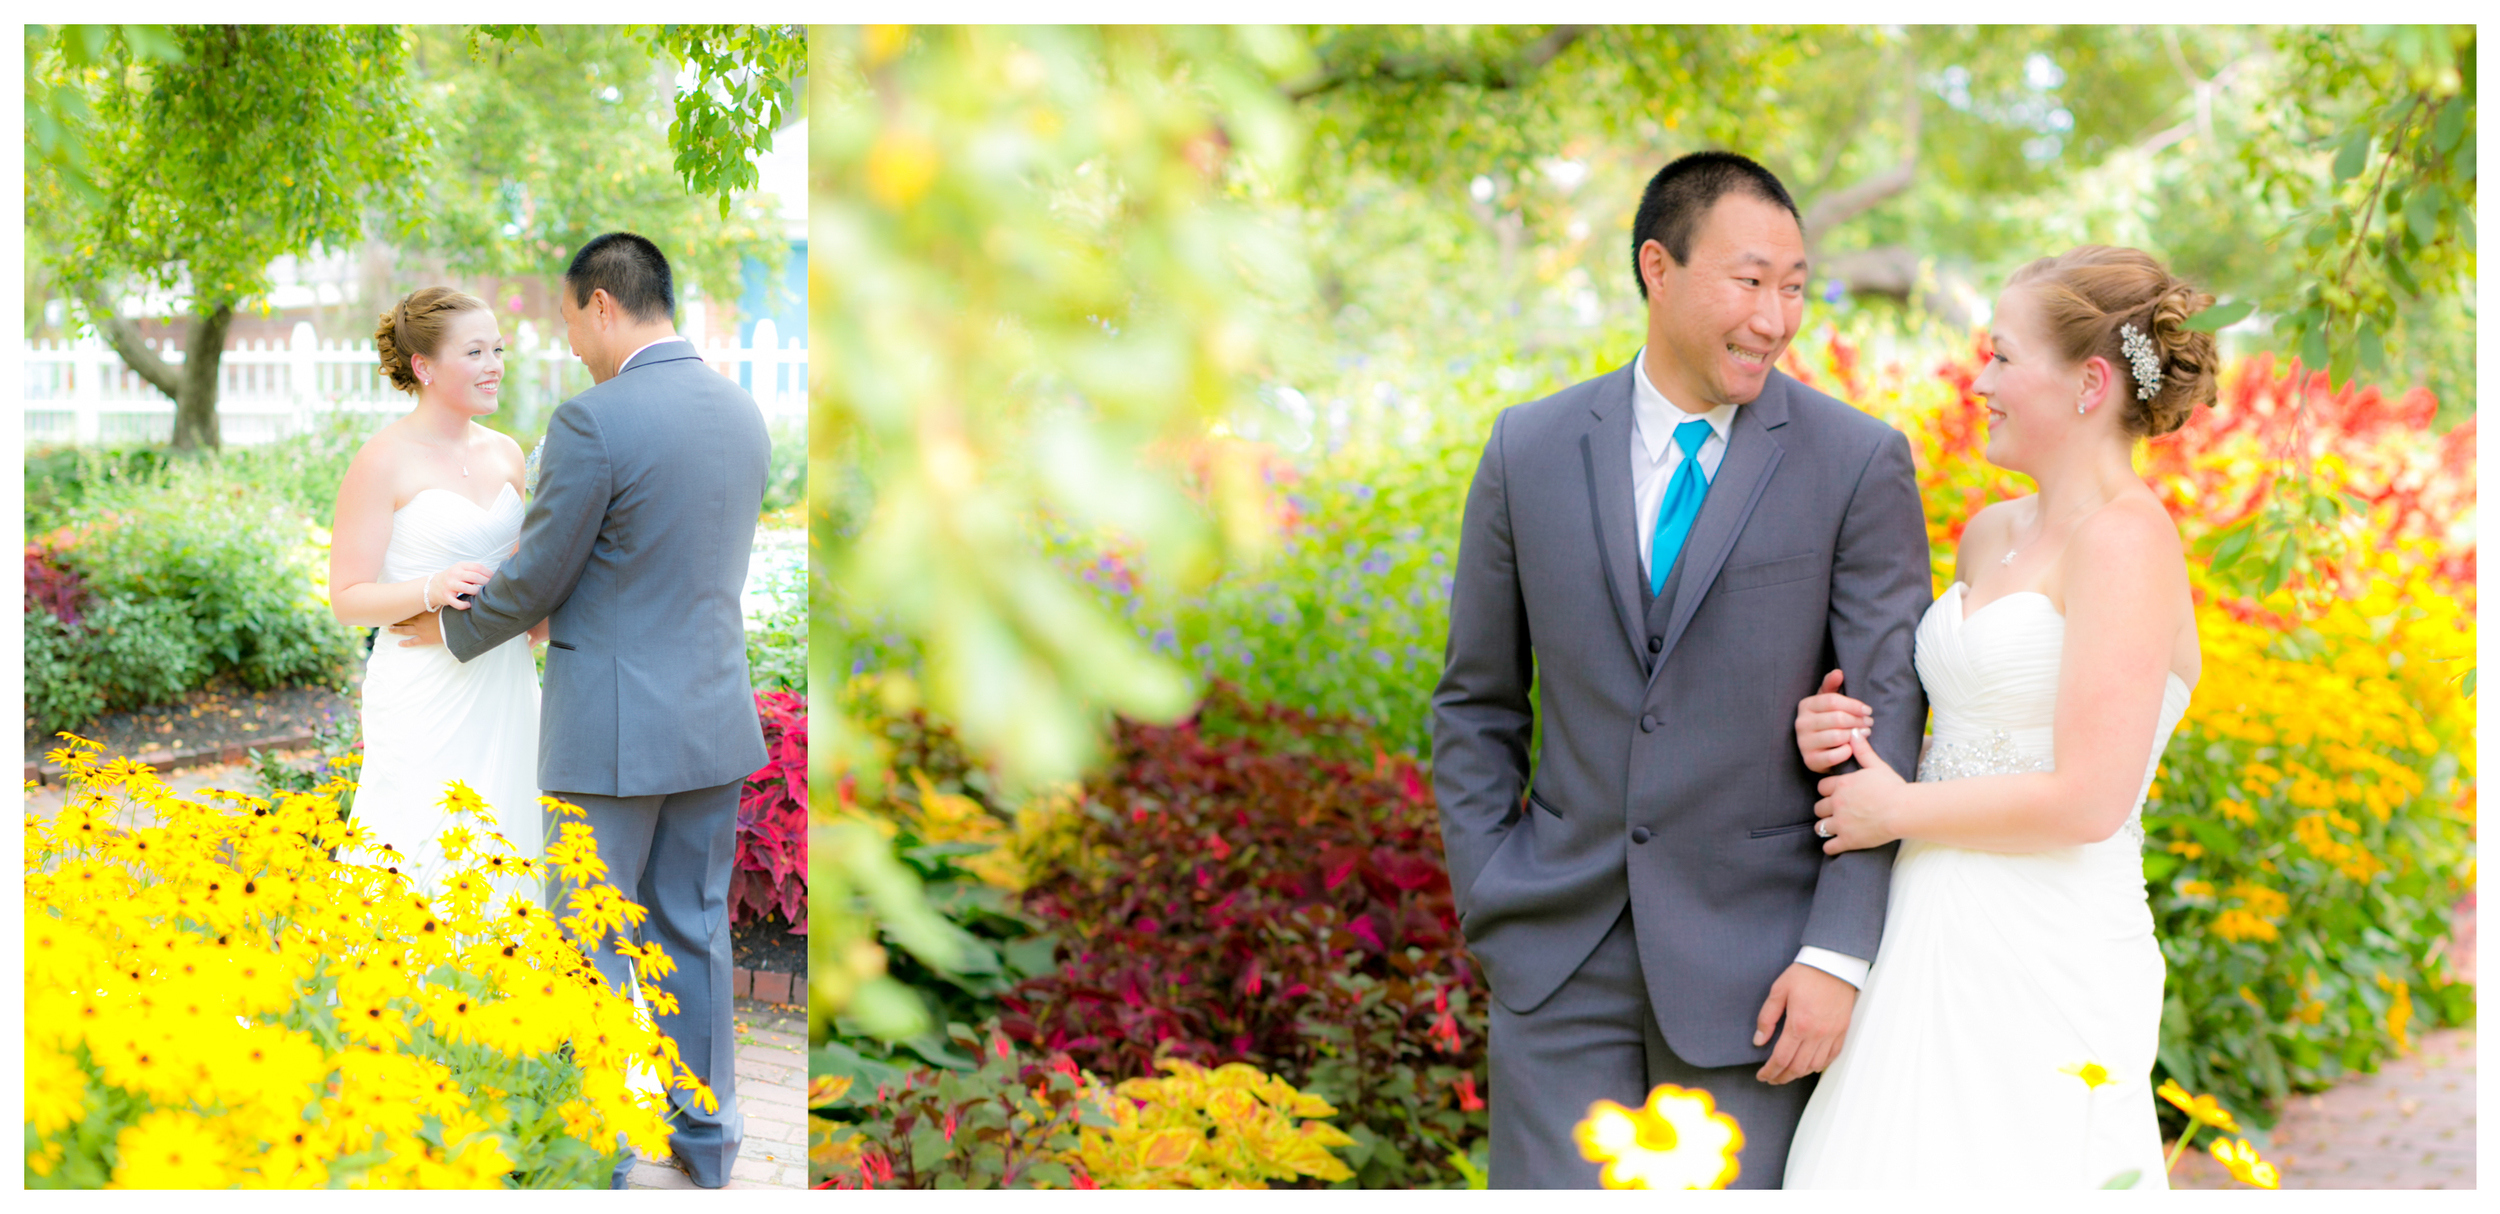 Meredith & Eric - August 2014 at Prescott Park, NH